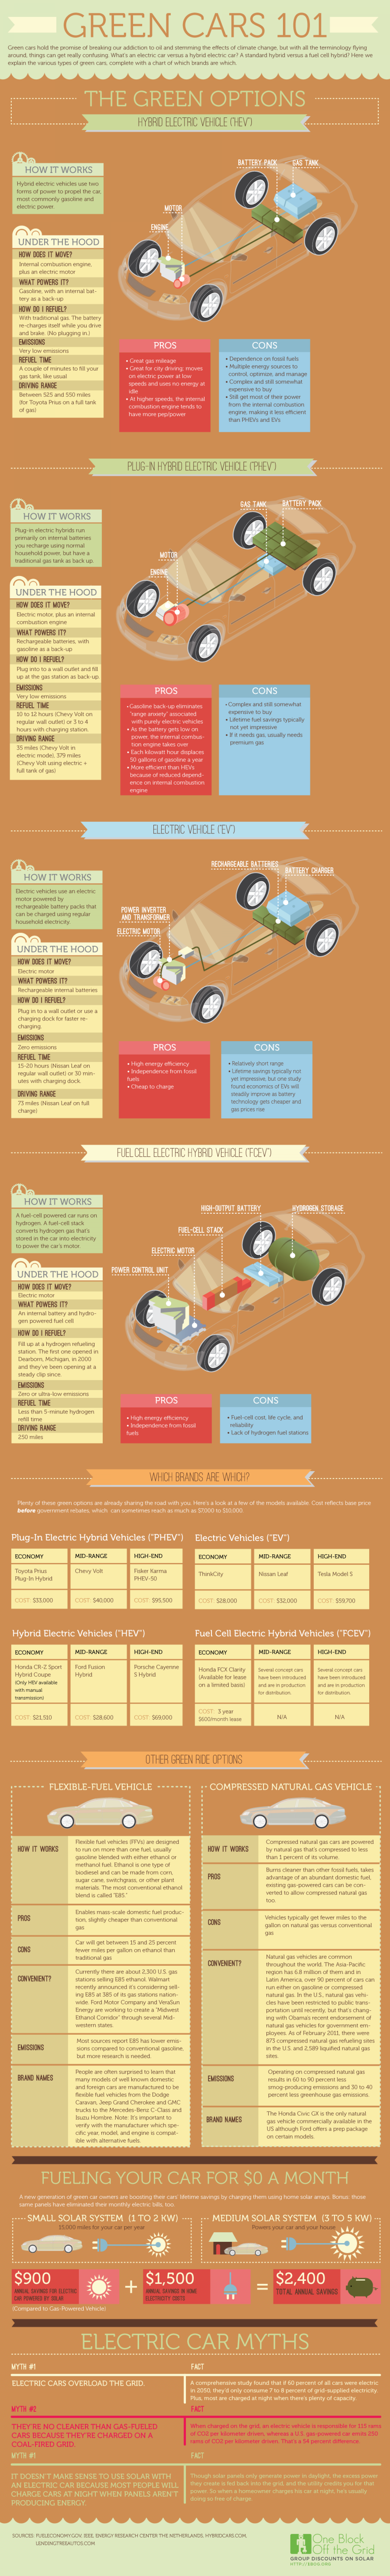 Green Cars 101 Infographic